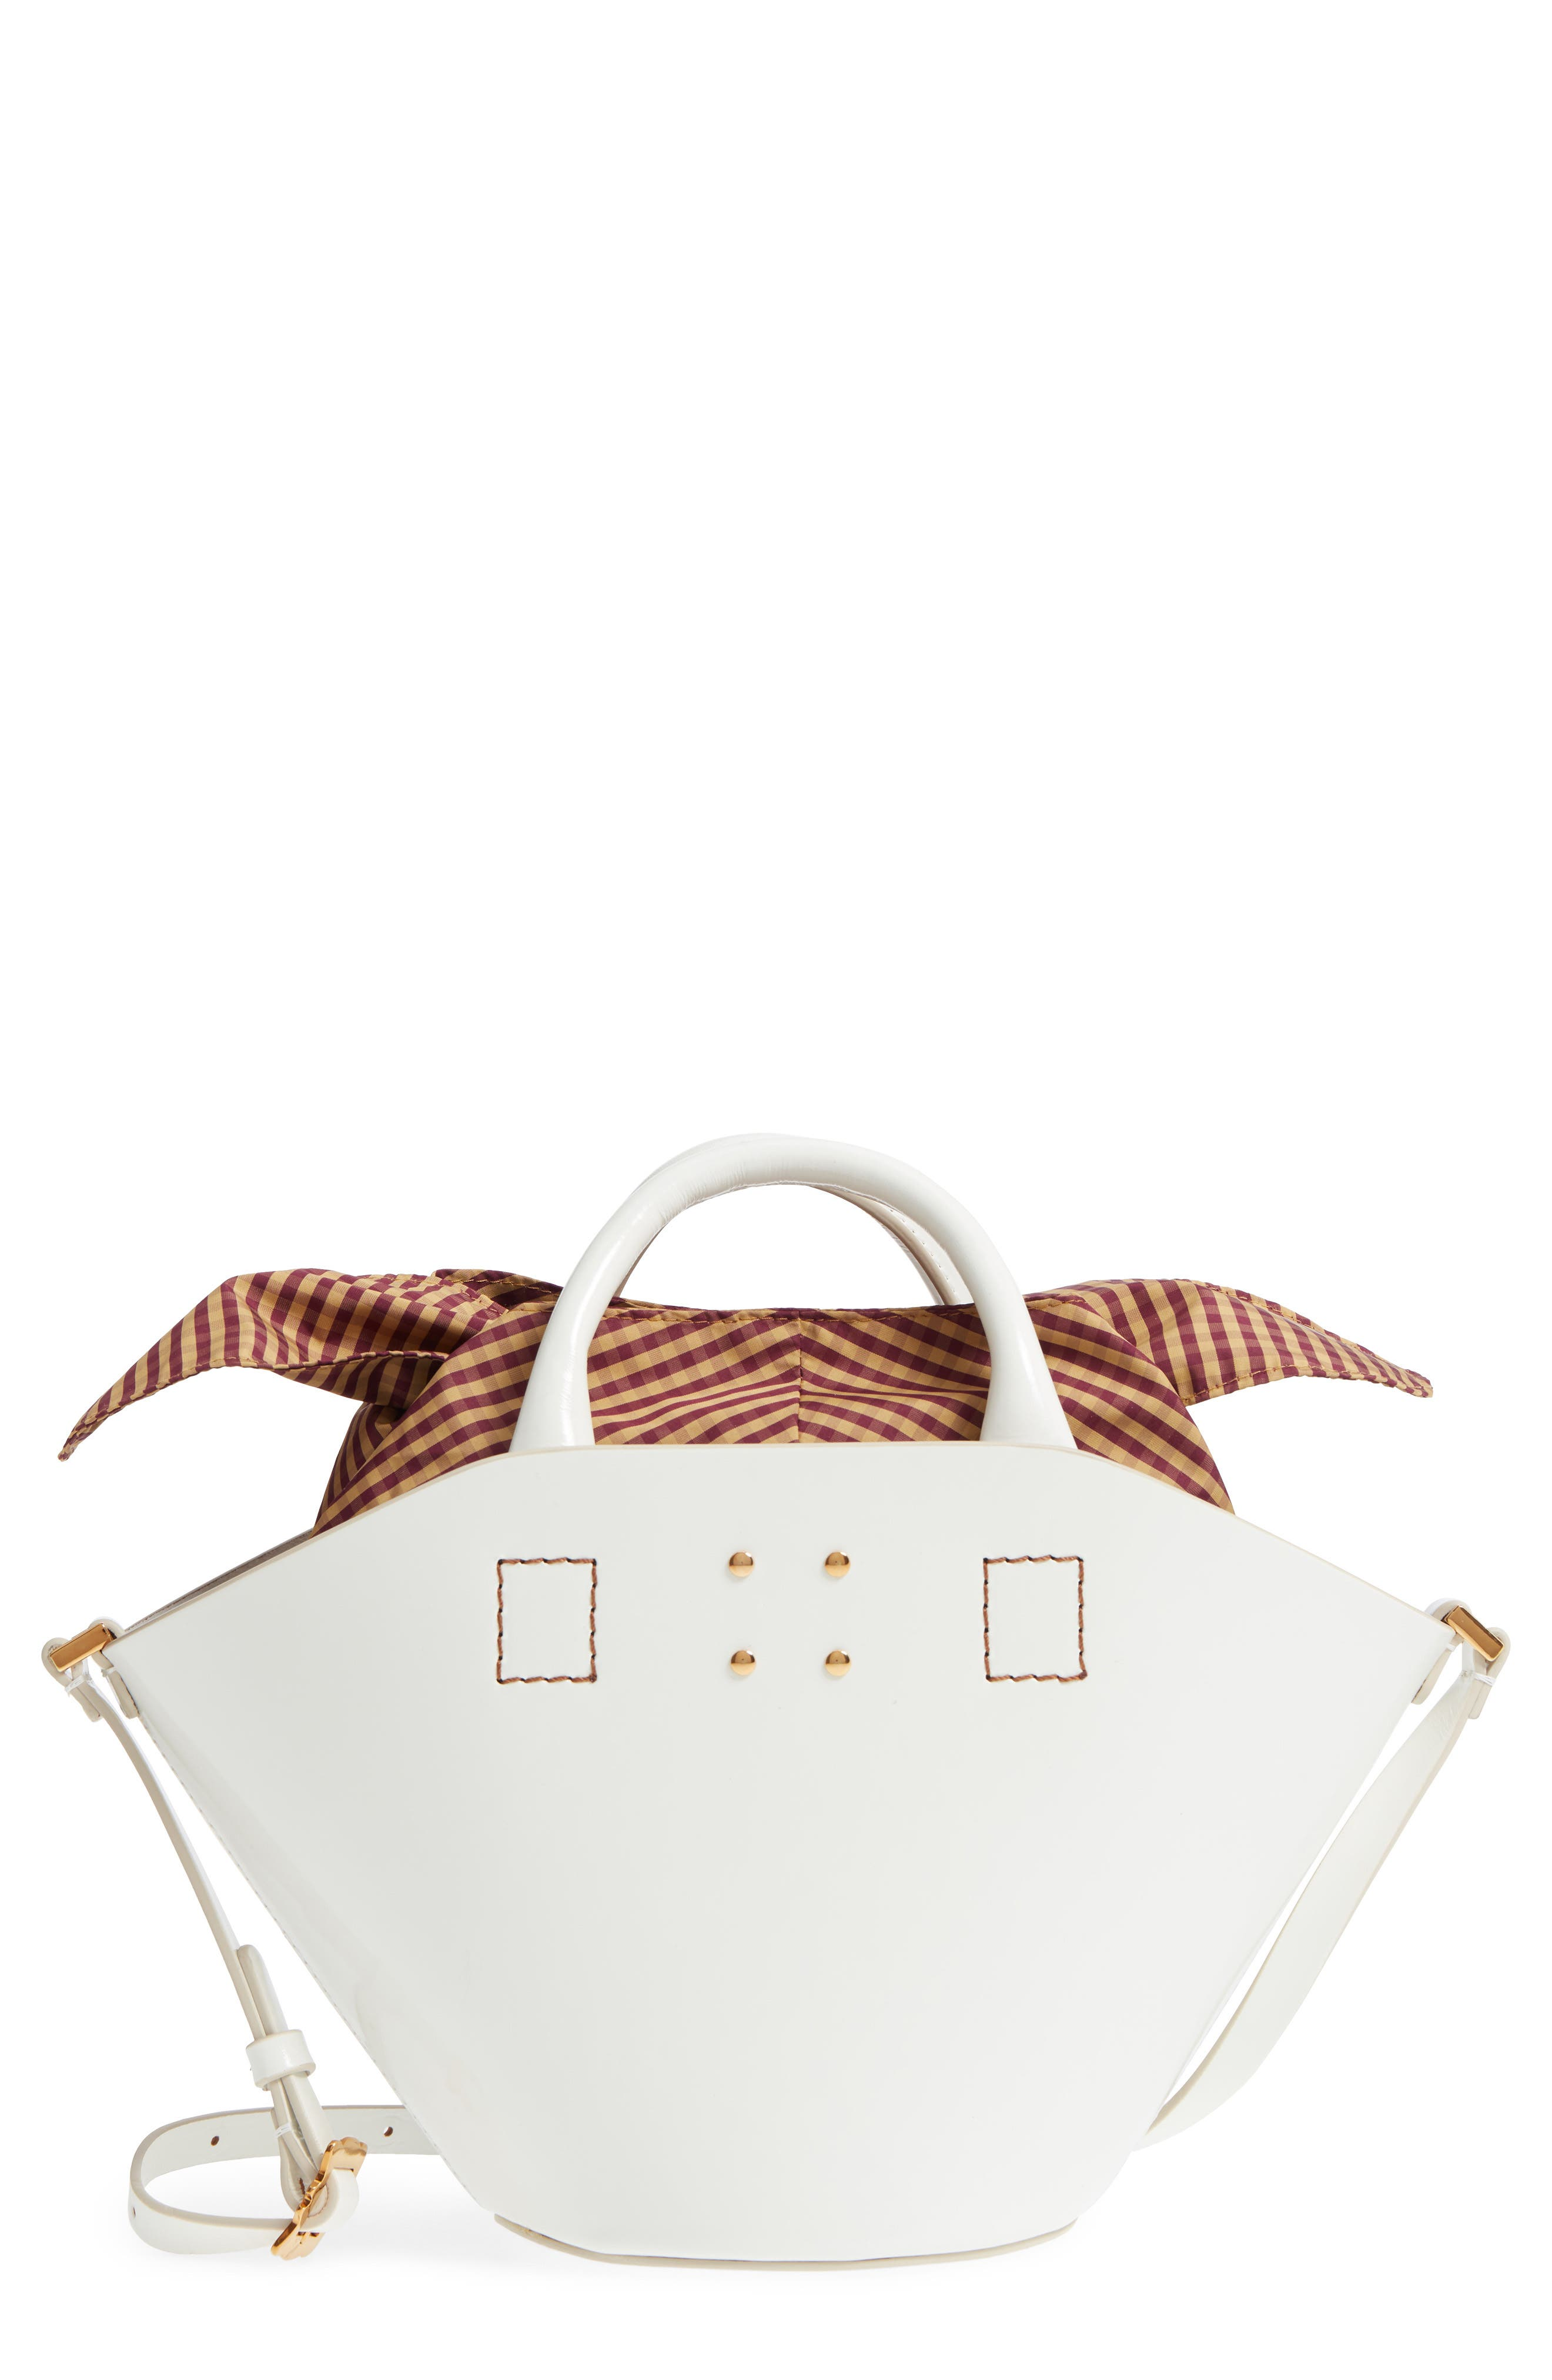 Small Leather Bucket Bag,                             Main thumbnail 1, color,                             White